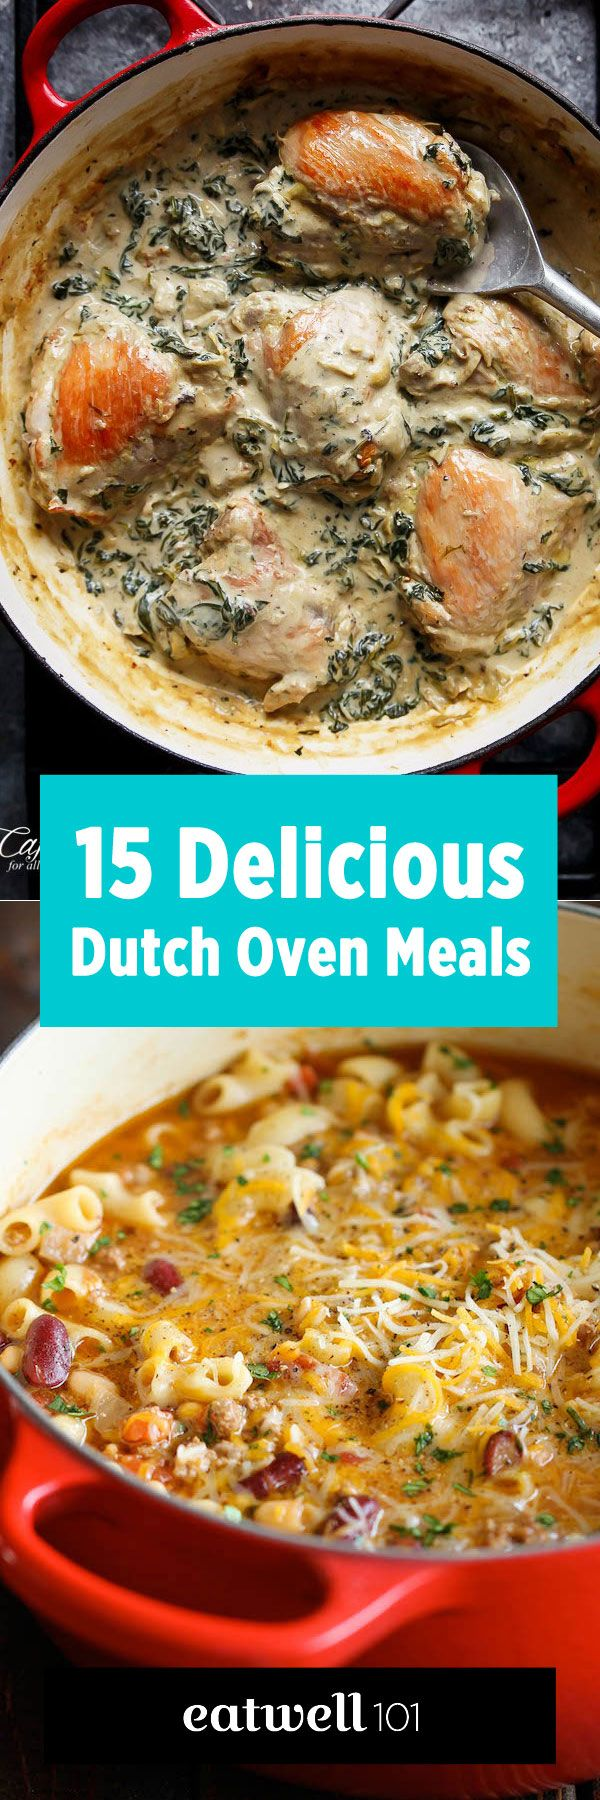 Don't stay behind, it's only a small investment for a lifetime of delicious meals! 15 delicious Dutch or French oven meals